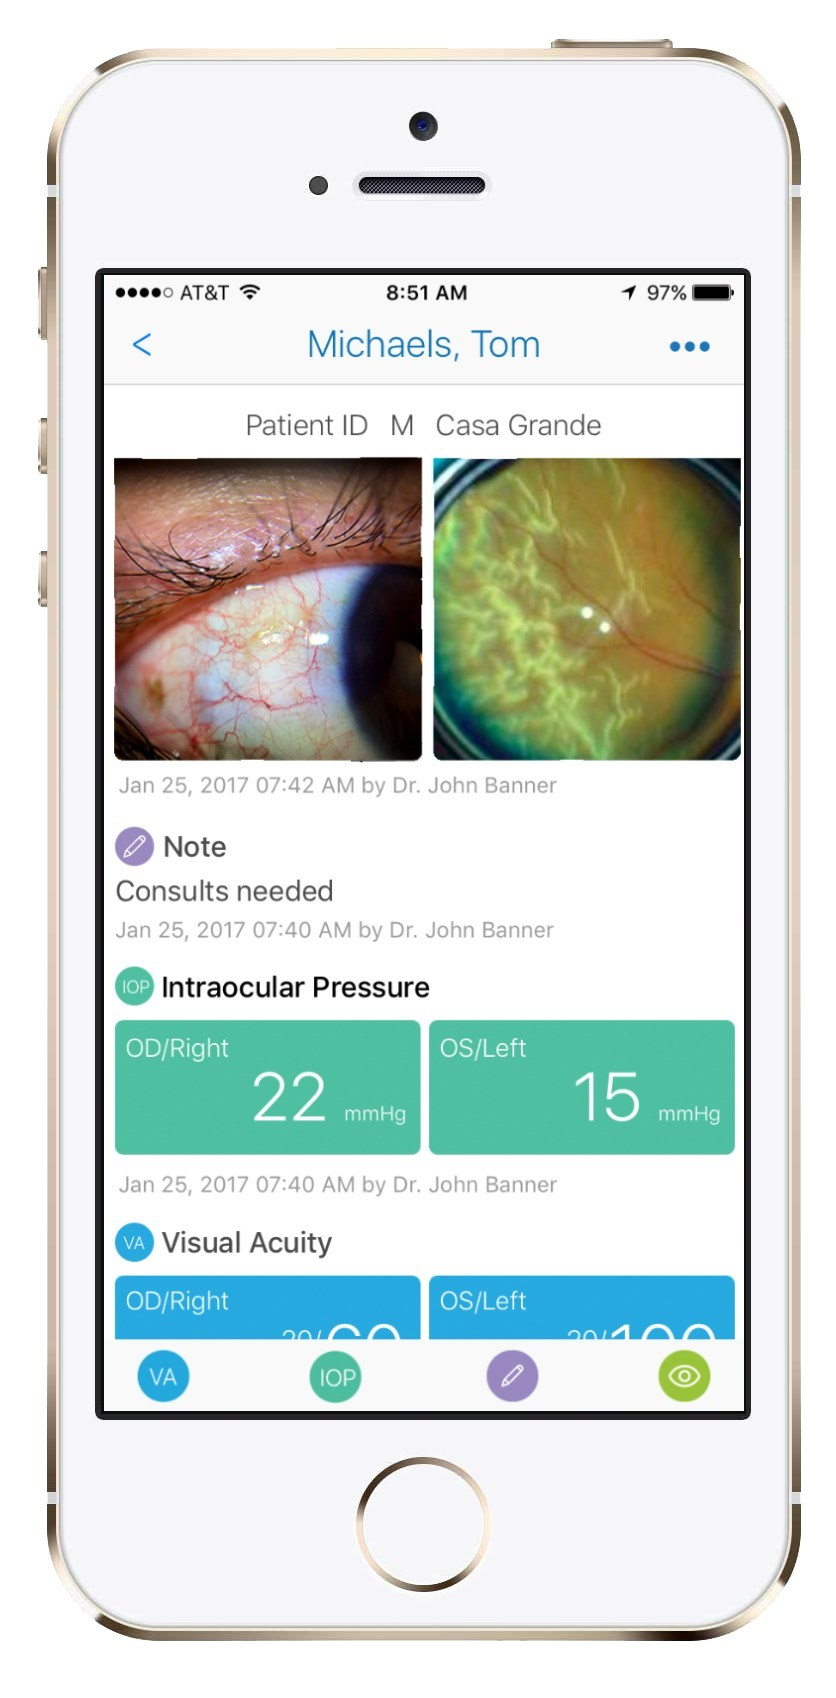 The Paxos mobile application enables providers to securely capture and discuss patient information.